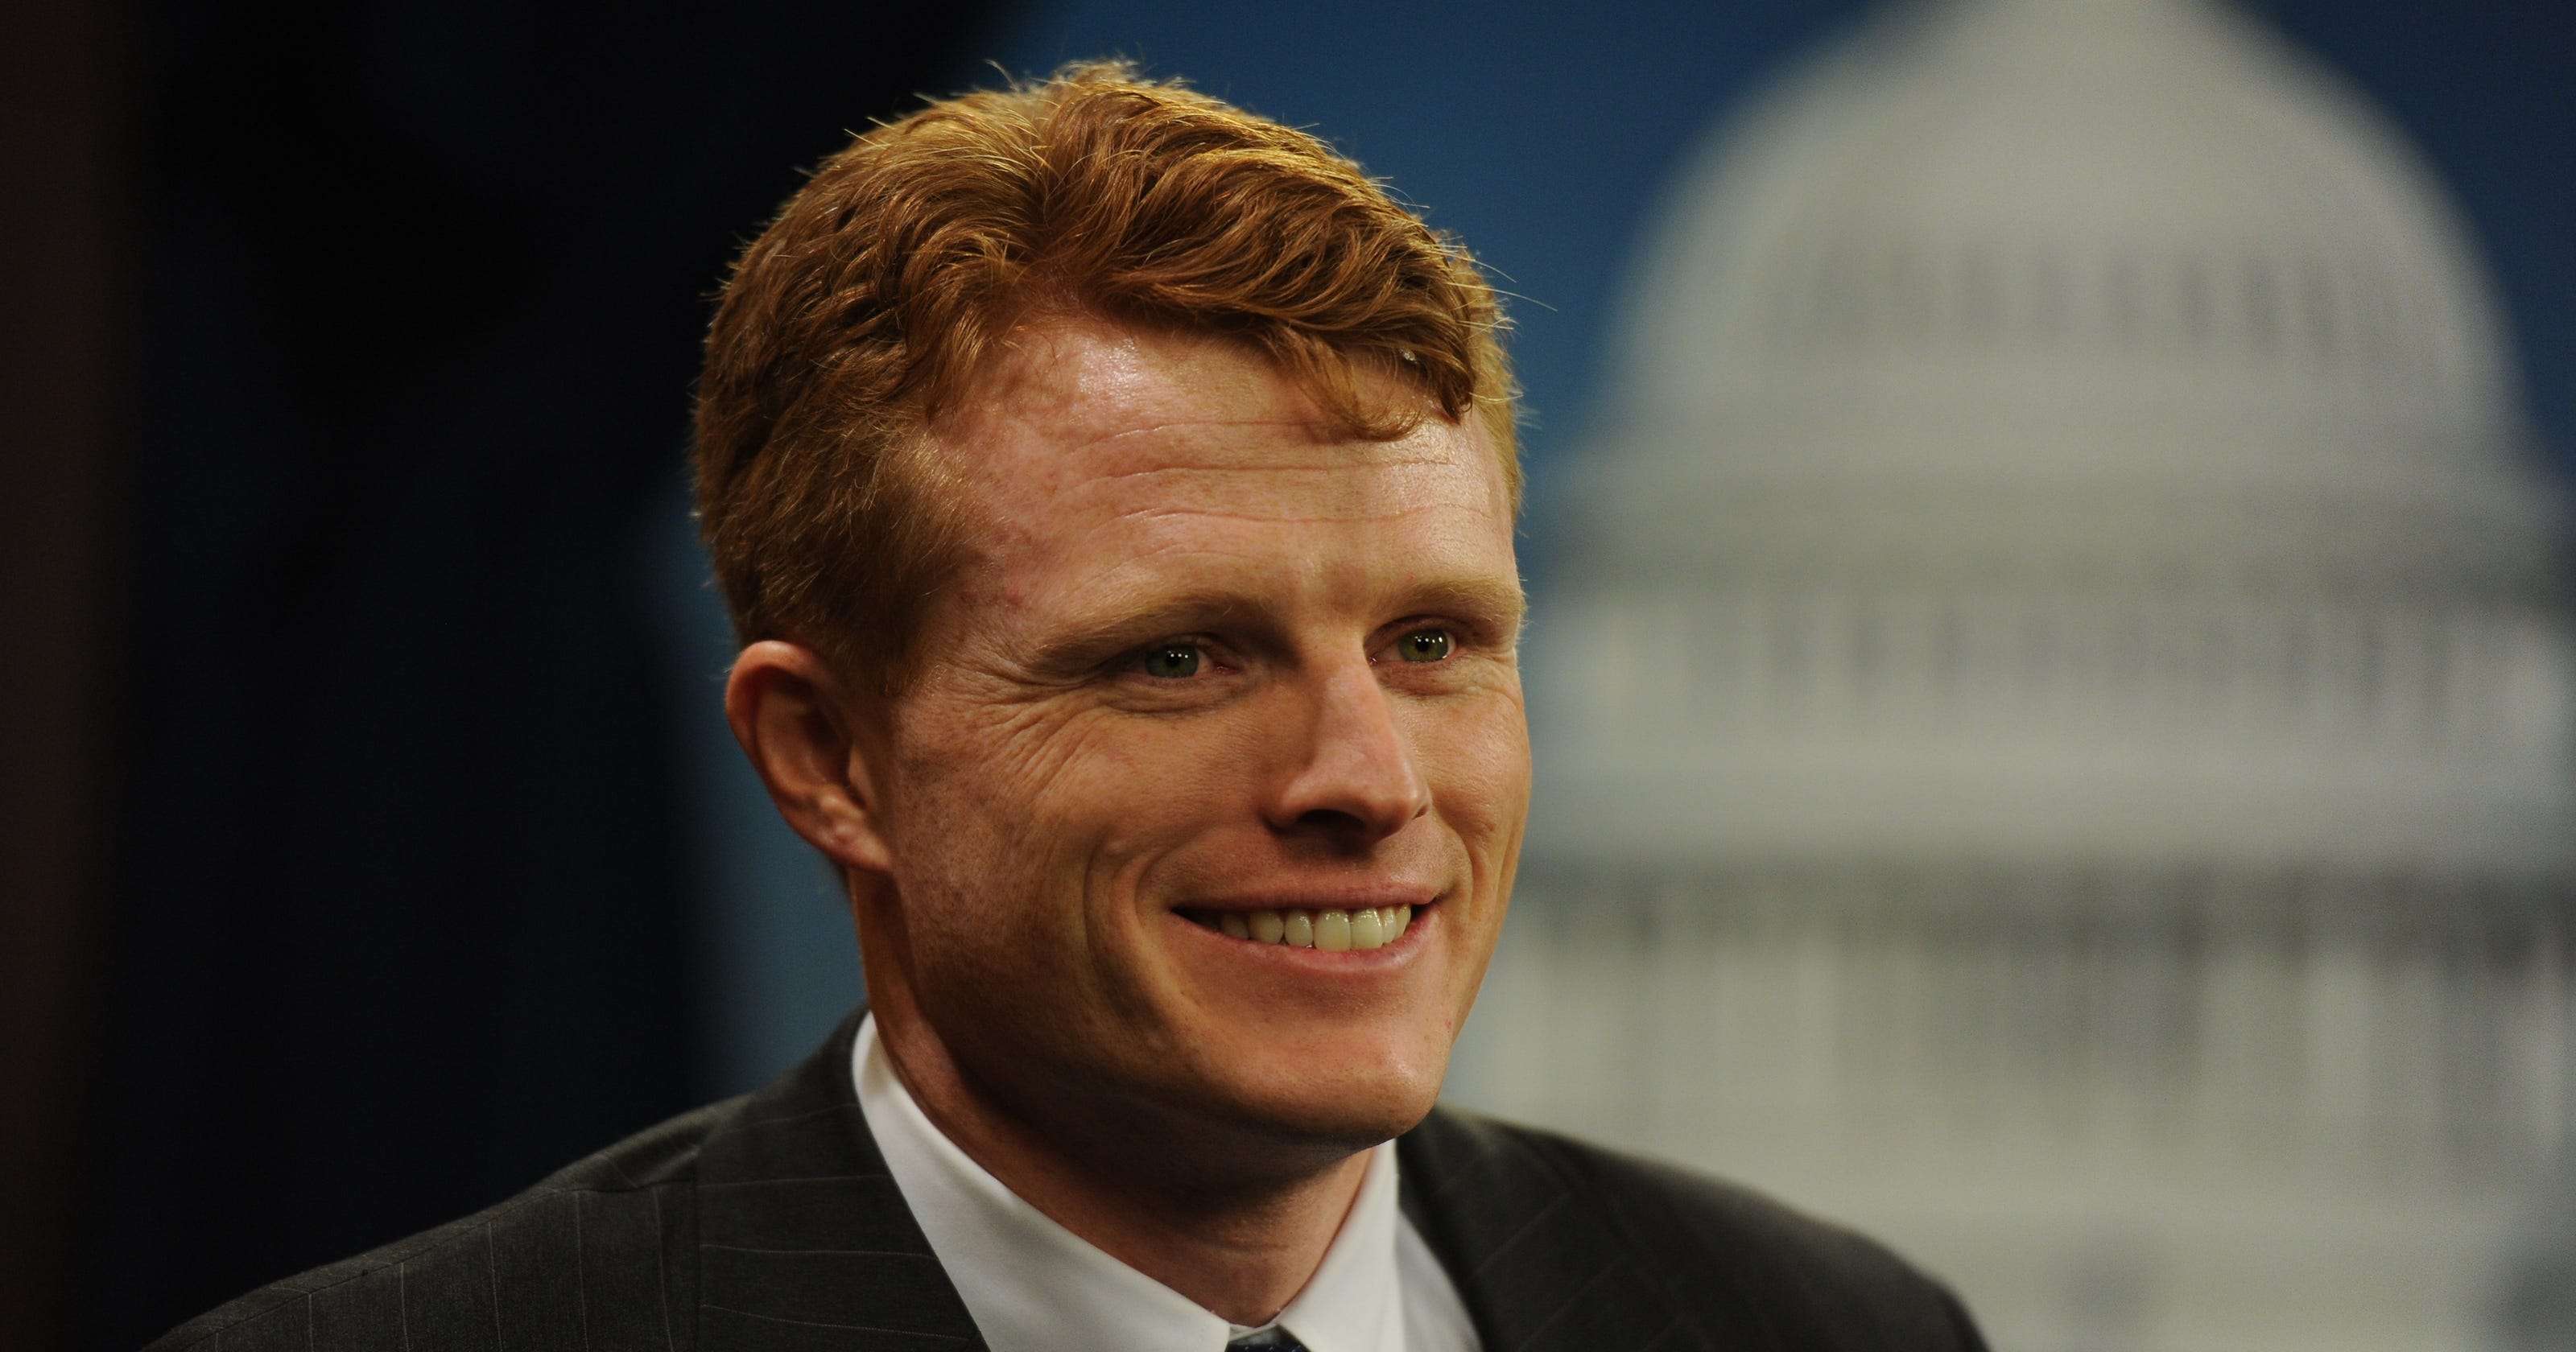 State of the Union: Joe Kennedy gives Democrat response  A look back